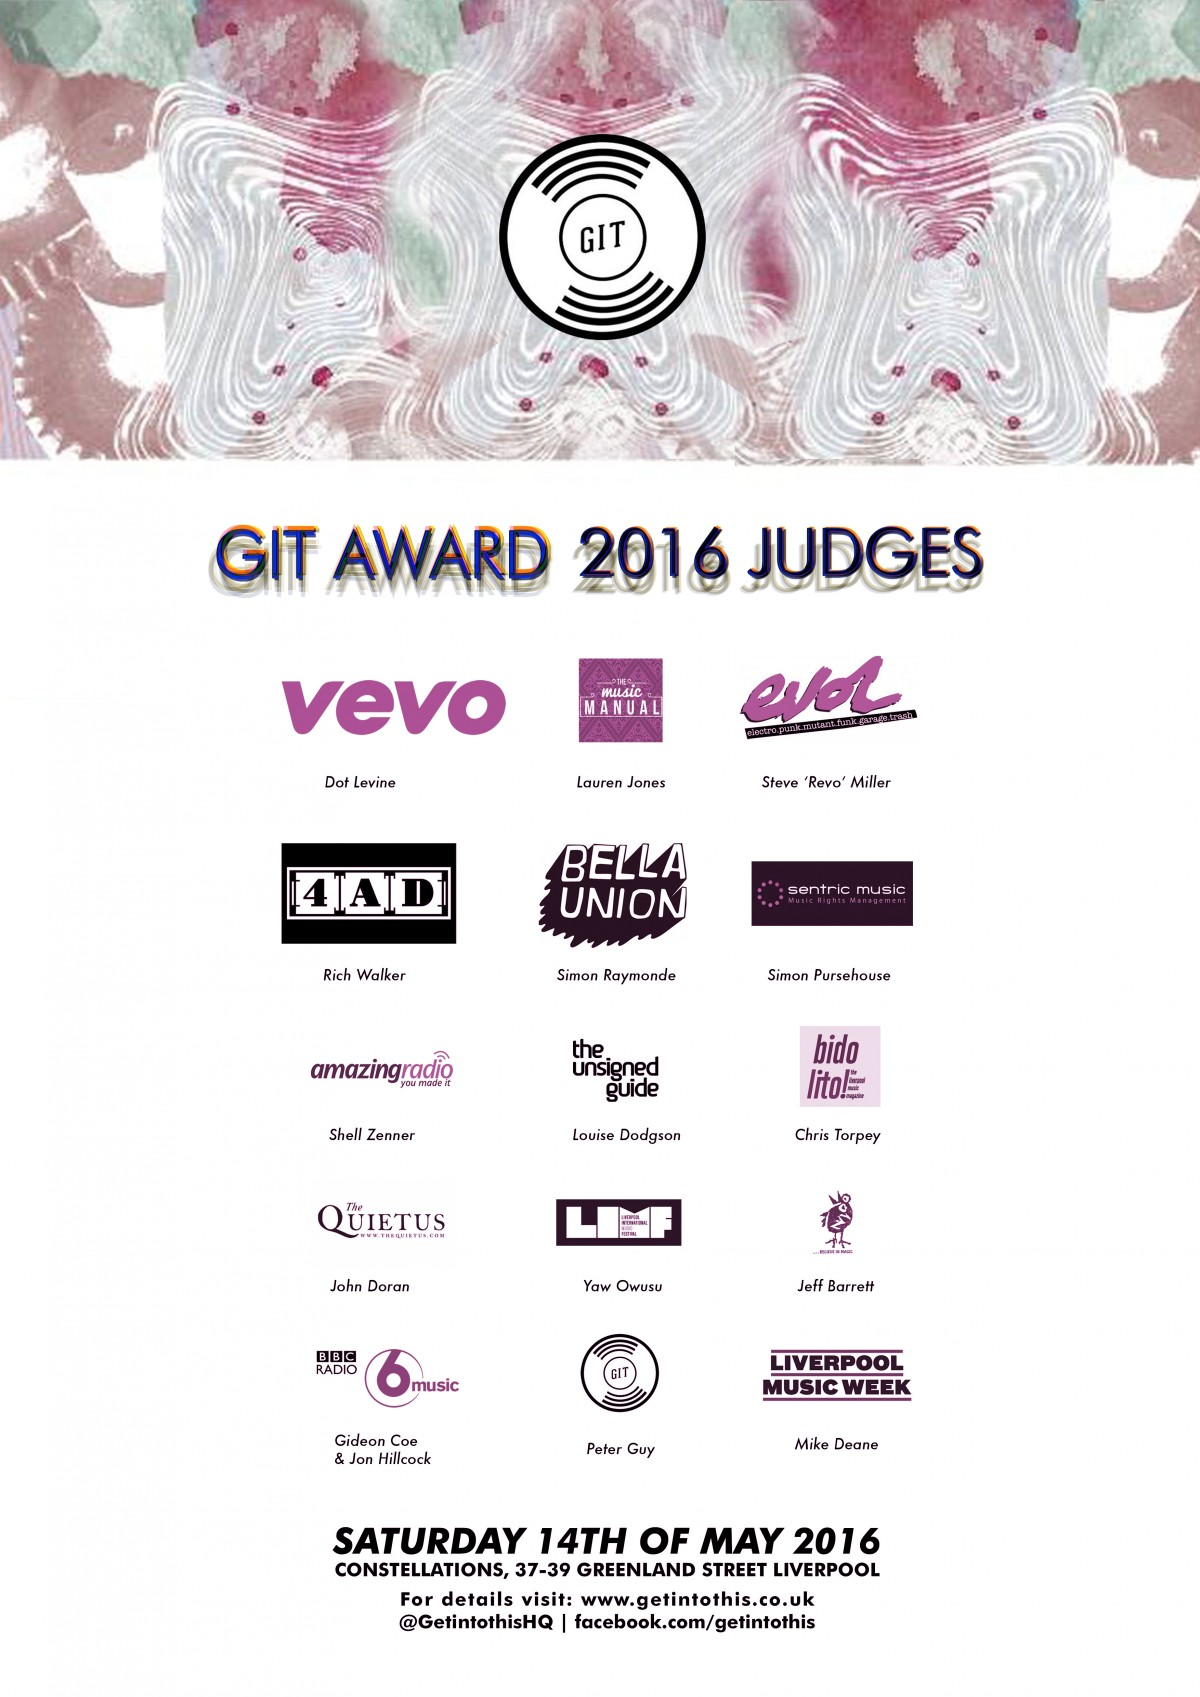 The GIT Award 2016 judging panel